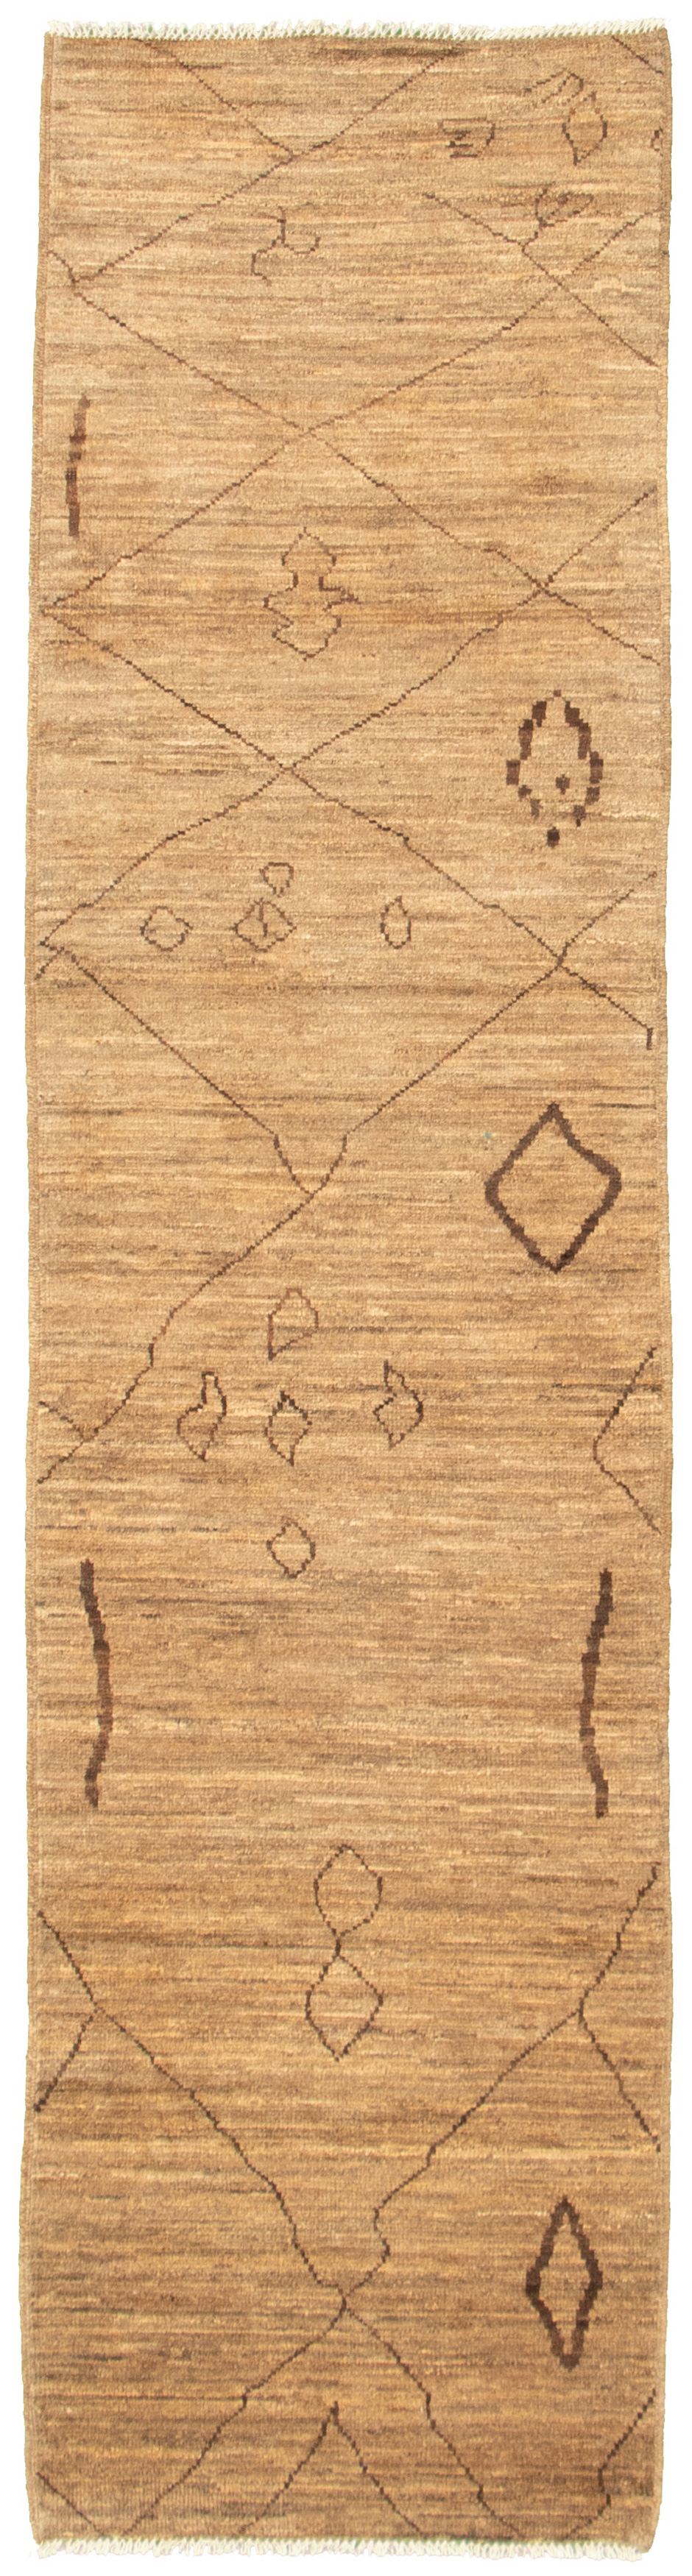 """Hand-knotted Marrakech Tan Wool Rug 2'8"""" x 11'3"""" Size: 2'8"""" x 11'3"""""""